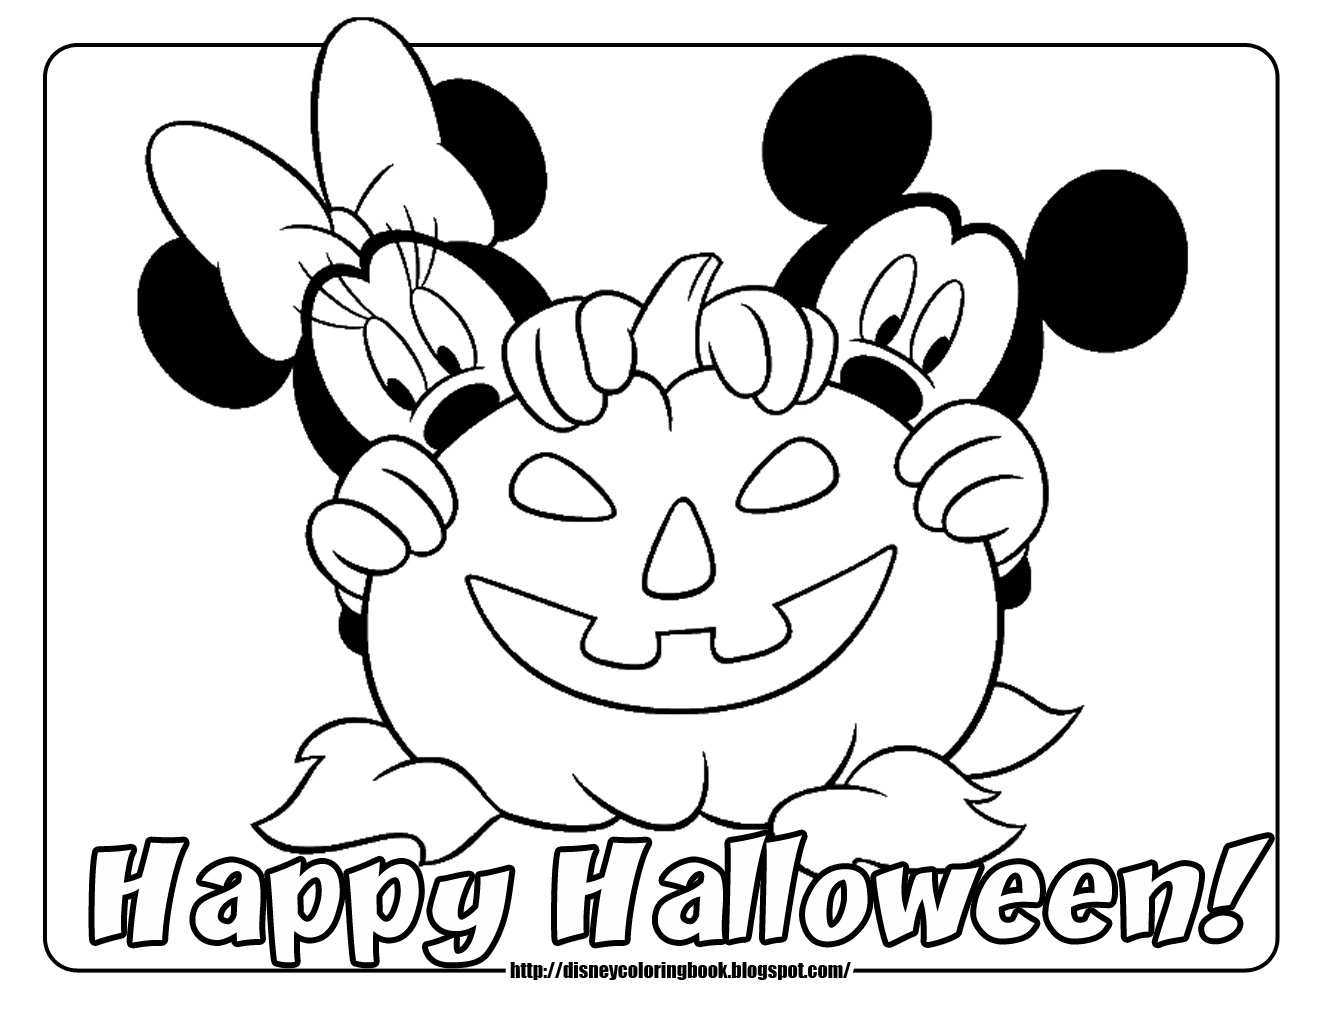 Disney Coloring Pages And Sheets For Kids Mickey And